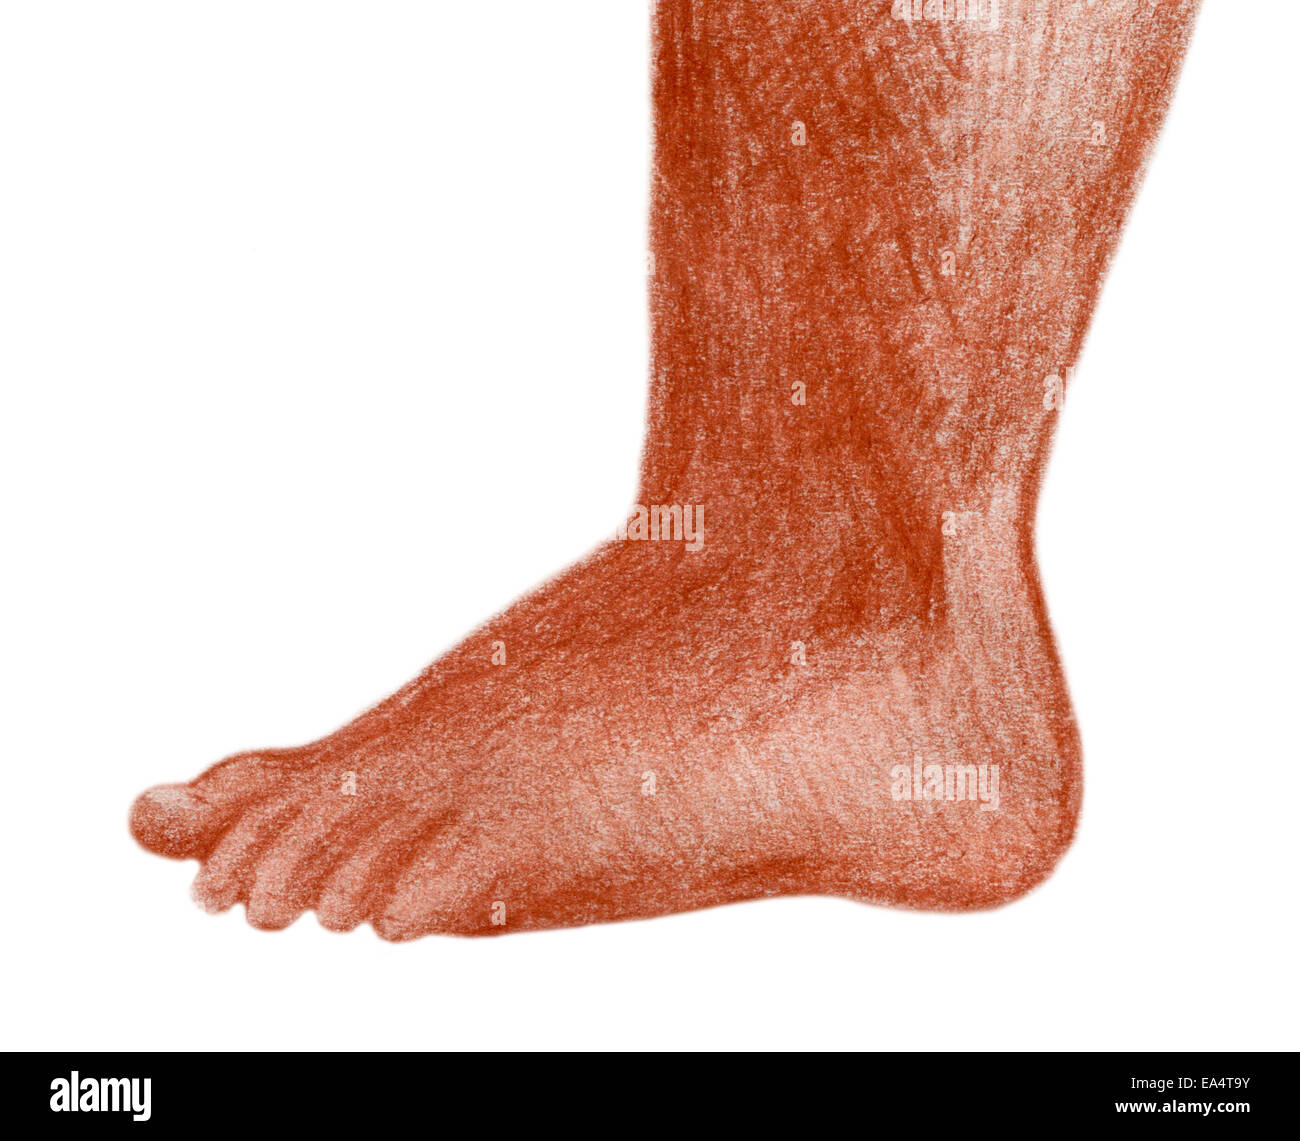 Toddler foot, original red chalk sketch of a chubby toddler foot, isolated on white. - Stock Image